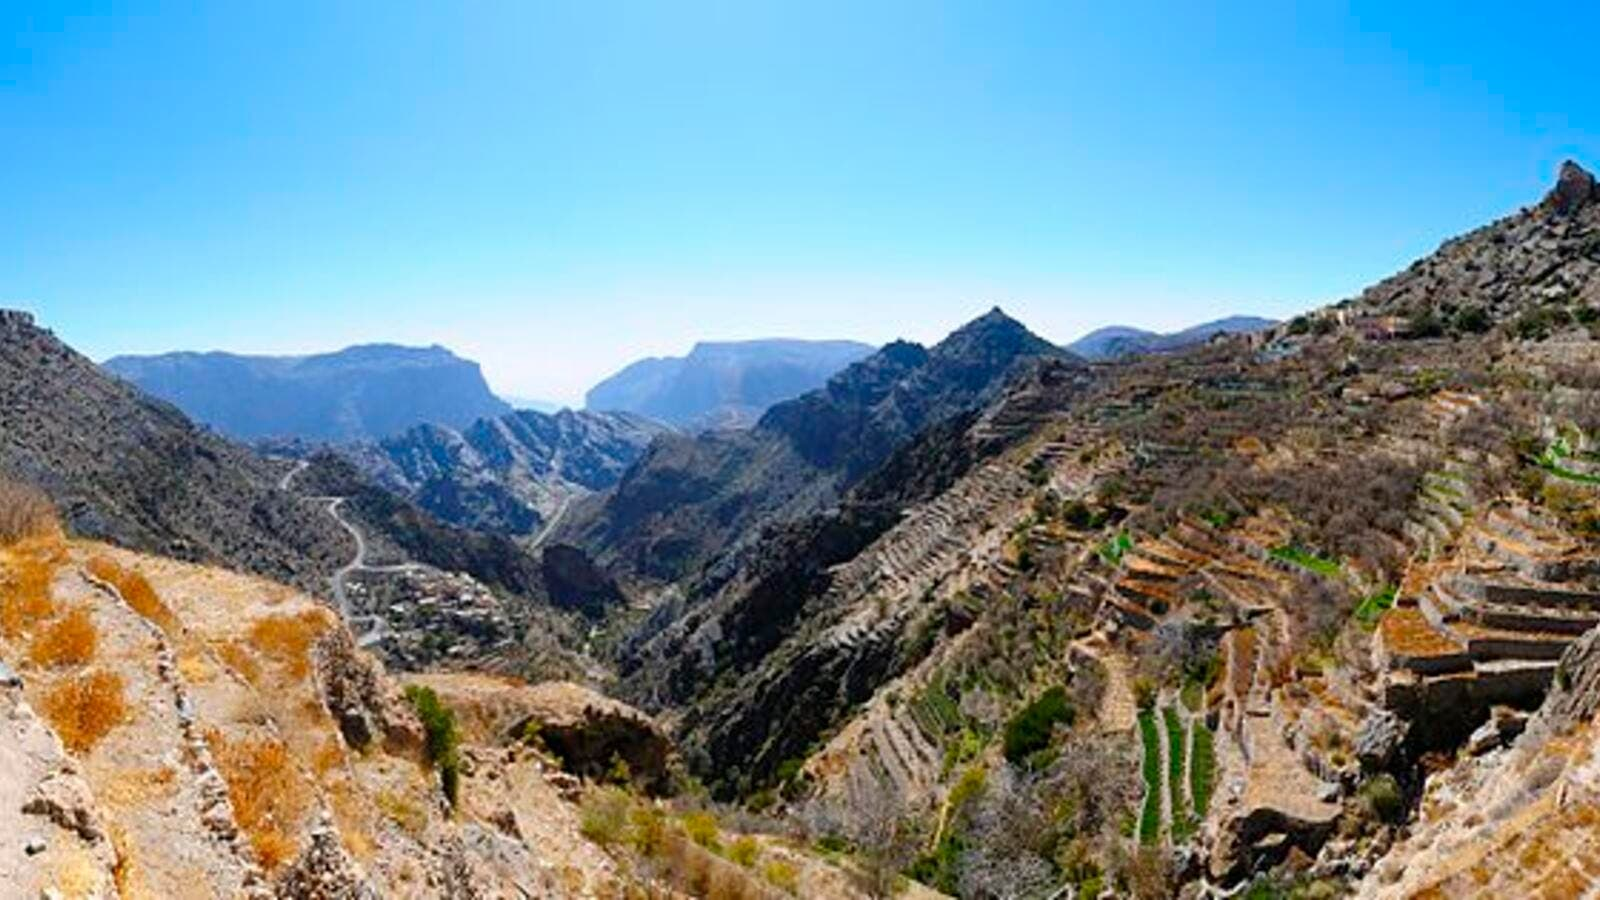 The largest of the 11 agreements is with Oman Investment Fund (OIF) for 73,367sq m of land in Jebel Akhdar, to build a resort. (Wikimedia Commons)